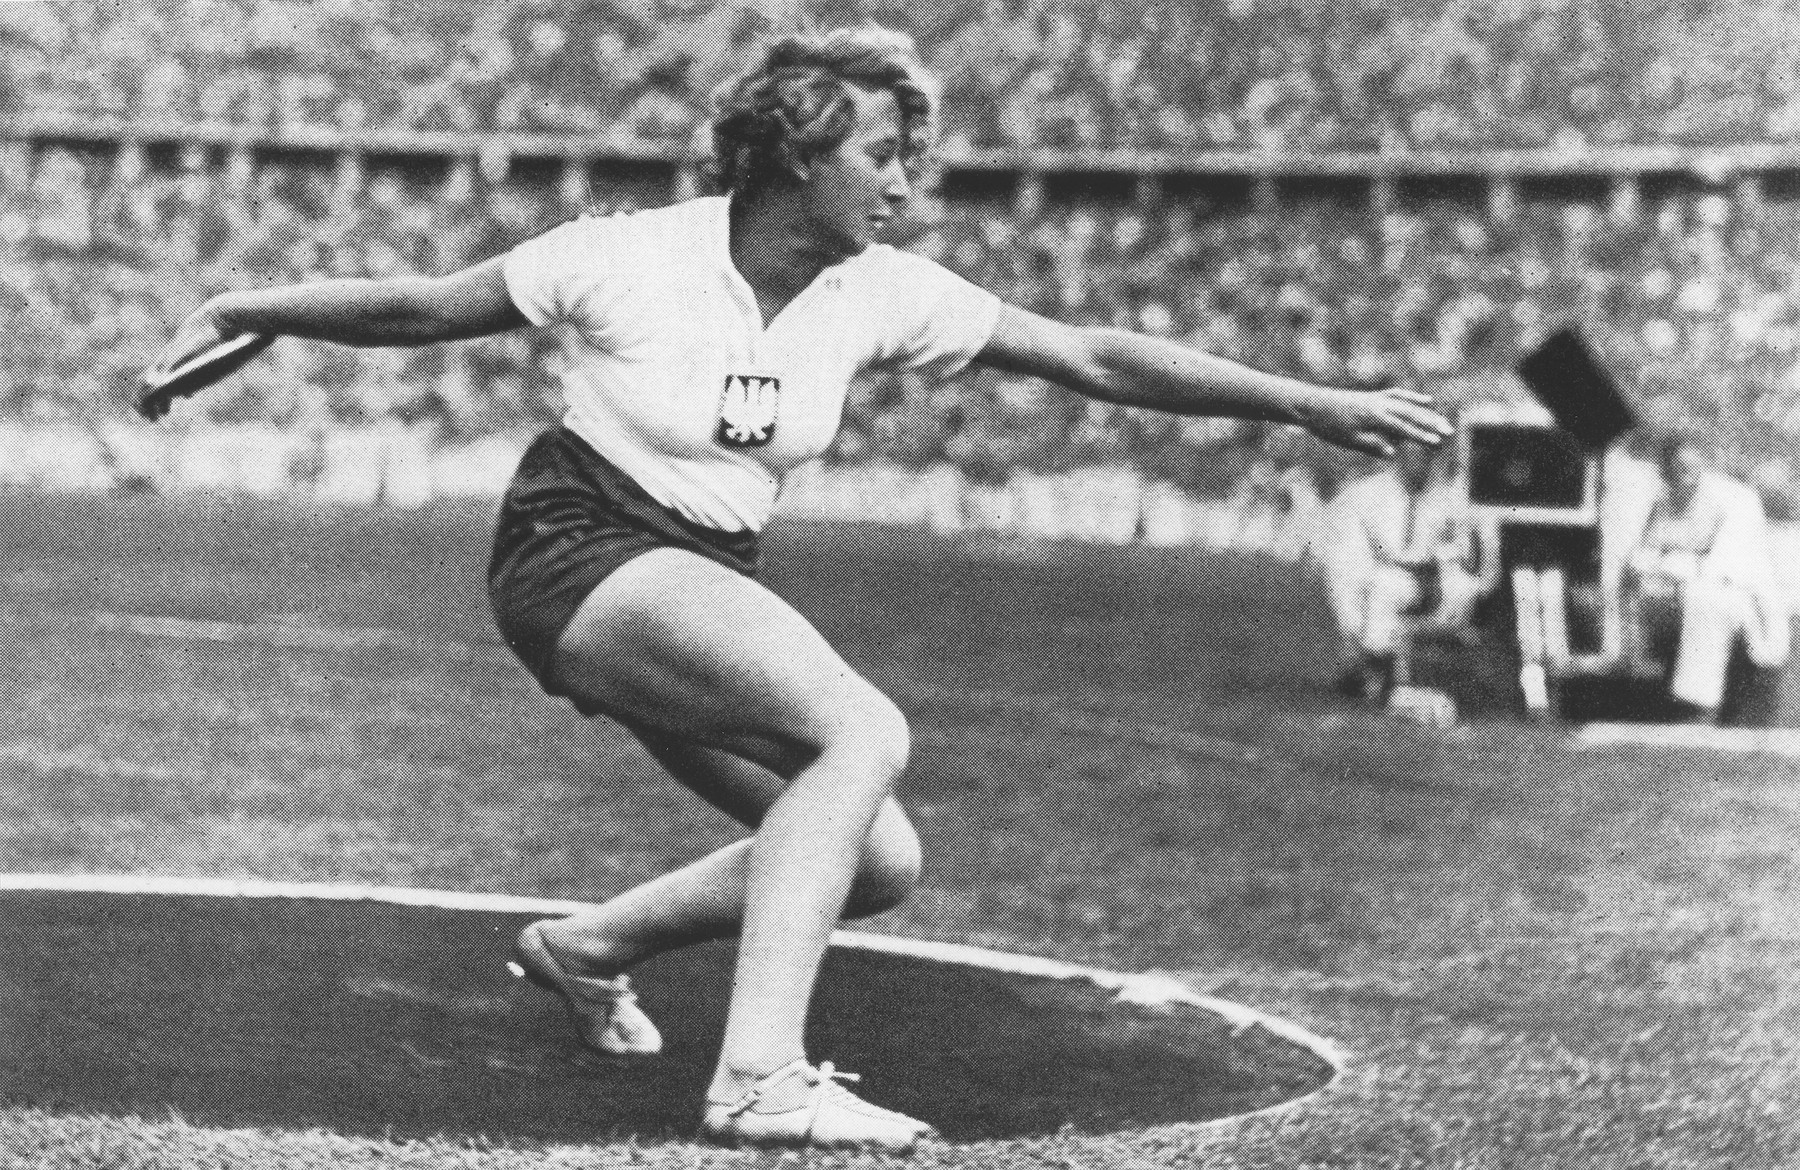 Polish athlete Jadwiga Wajsowna competes in the discus throwing event at the 11th Summer Olympic Games in Berlin. She finished second.